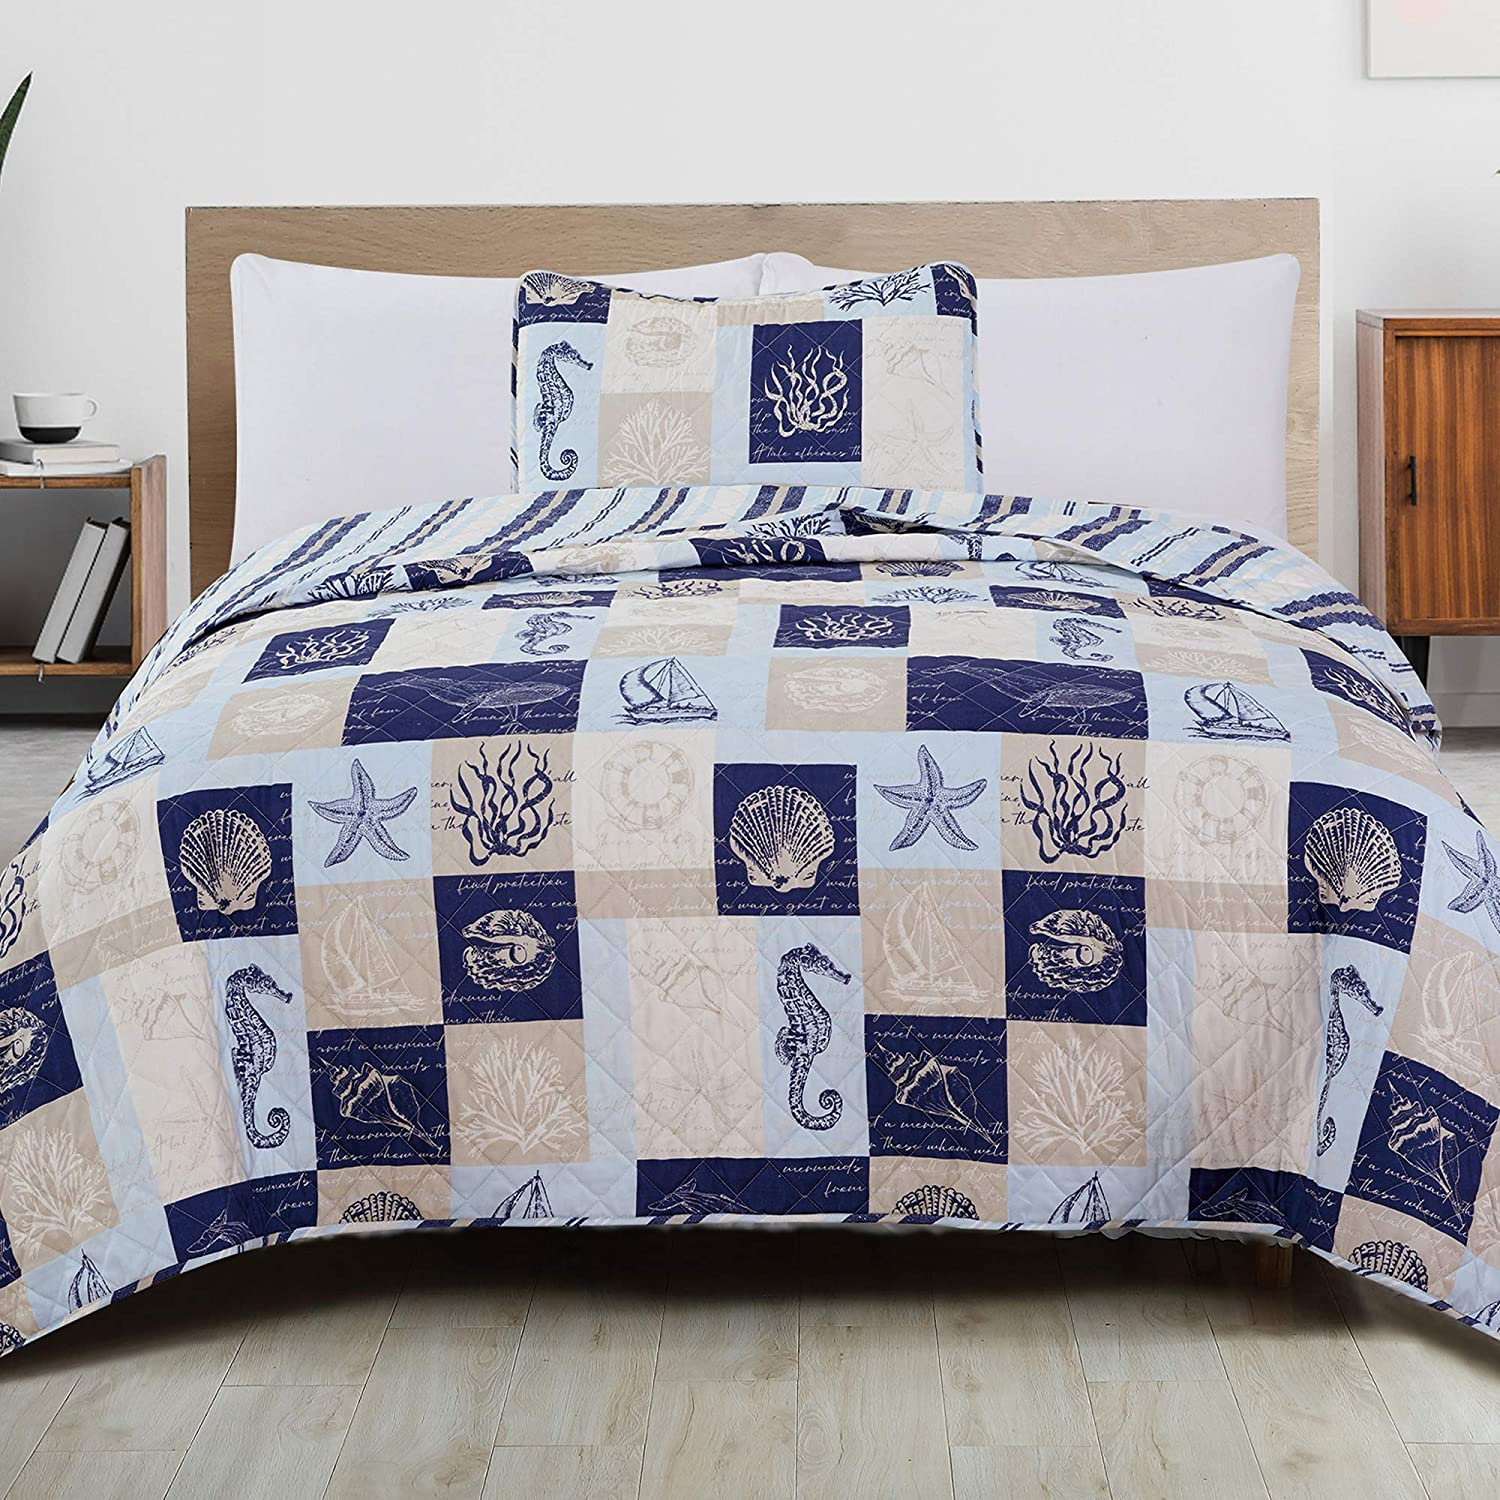 Great Bay Home 2-Piece Reversible Quilt Set with Shams. All-Season Coastal Beach Theme Bedspread Coverlet. Caspian Collection (Twin, Navy/Taupe)